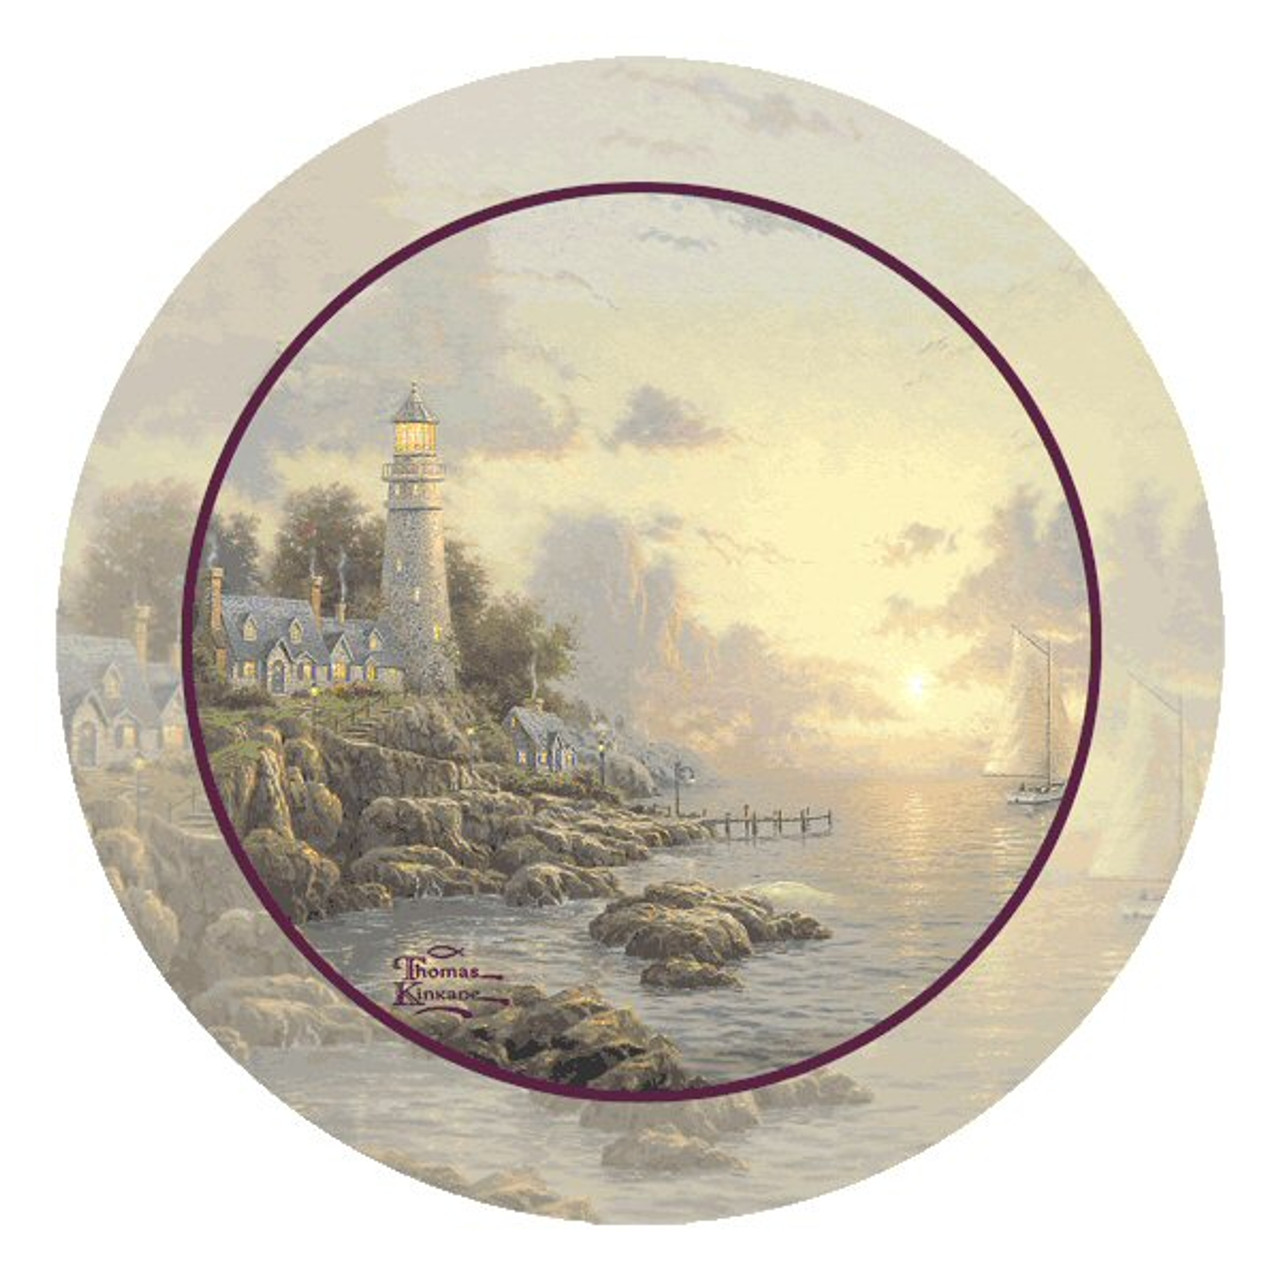 The Sea Of Tranquility Lighthouse Coasters By Thomas Kinkade Set Of 8 Drink Coasters Thirstystone